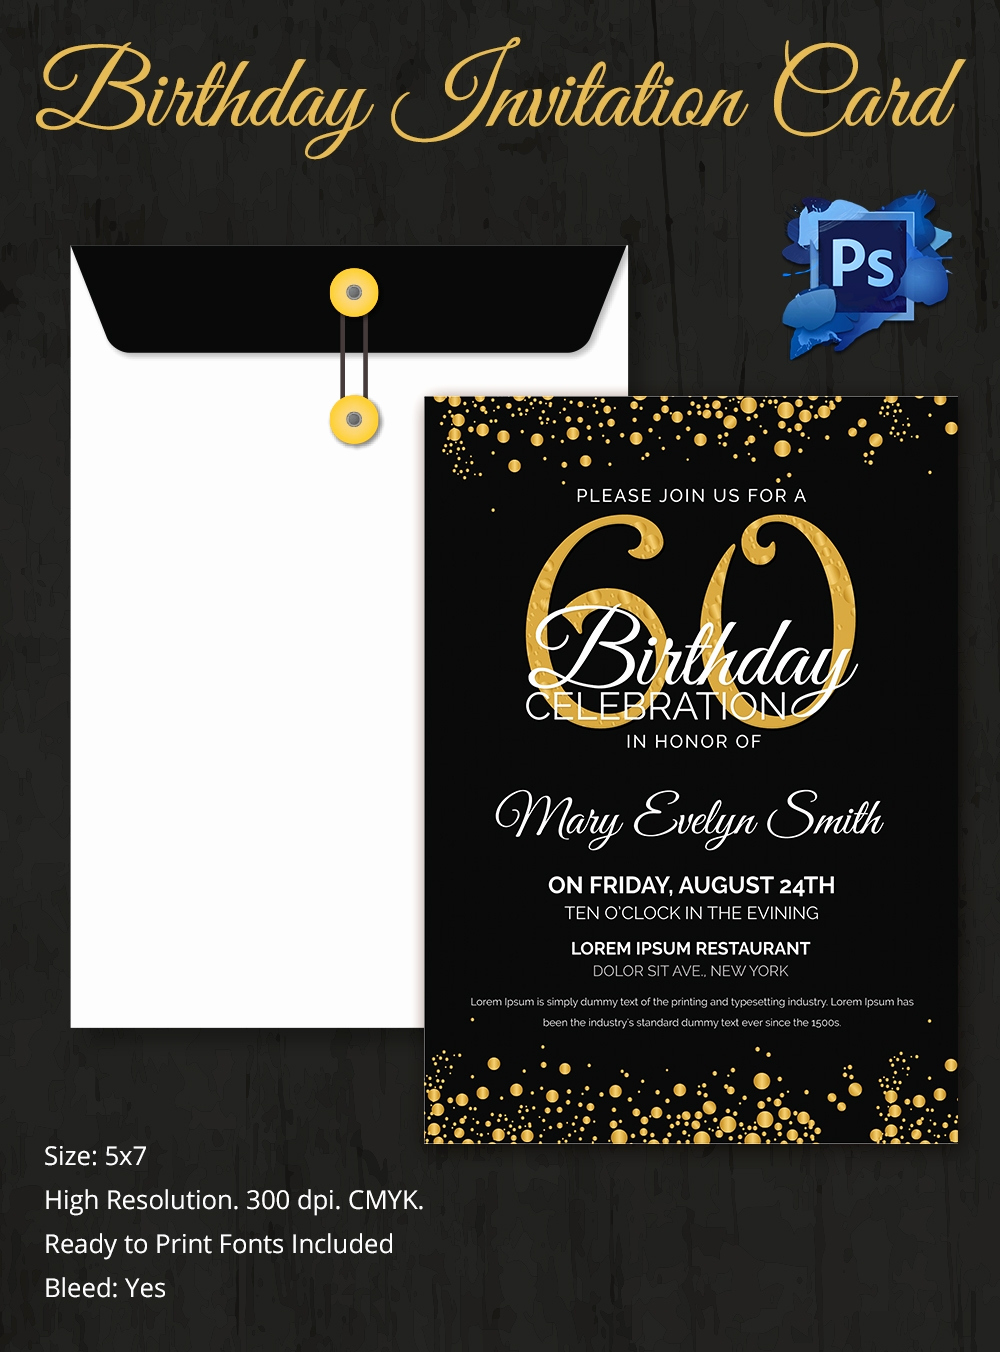 Birthday Invitation Card Sample Unique Birthday Invitation Template 32 Free Word Pdf Psd Ai